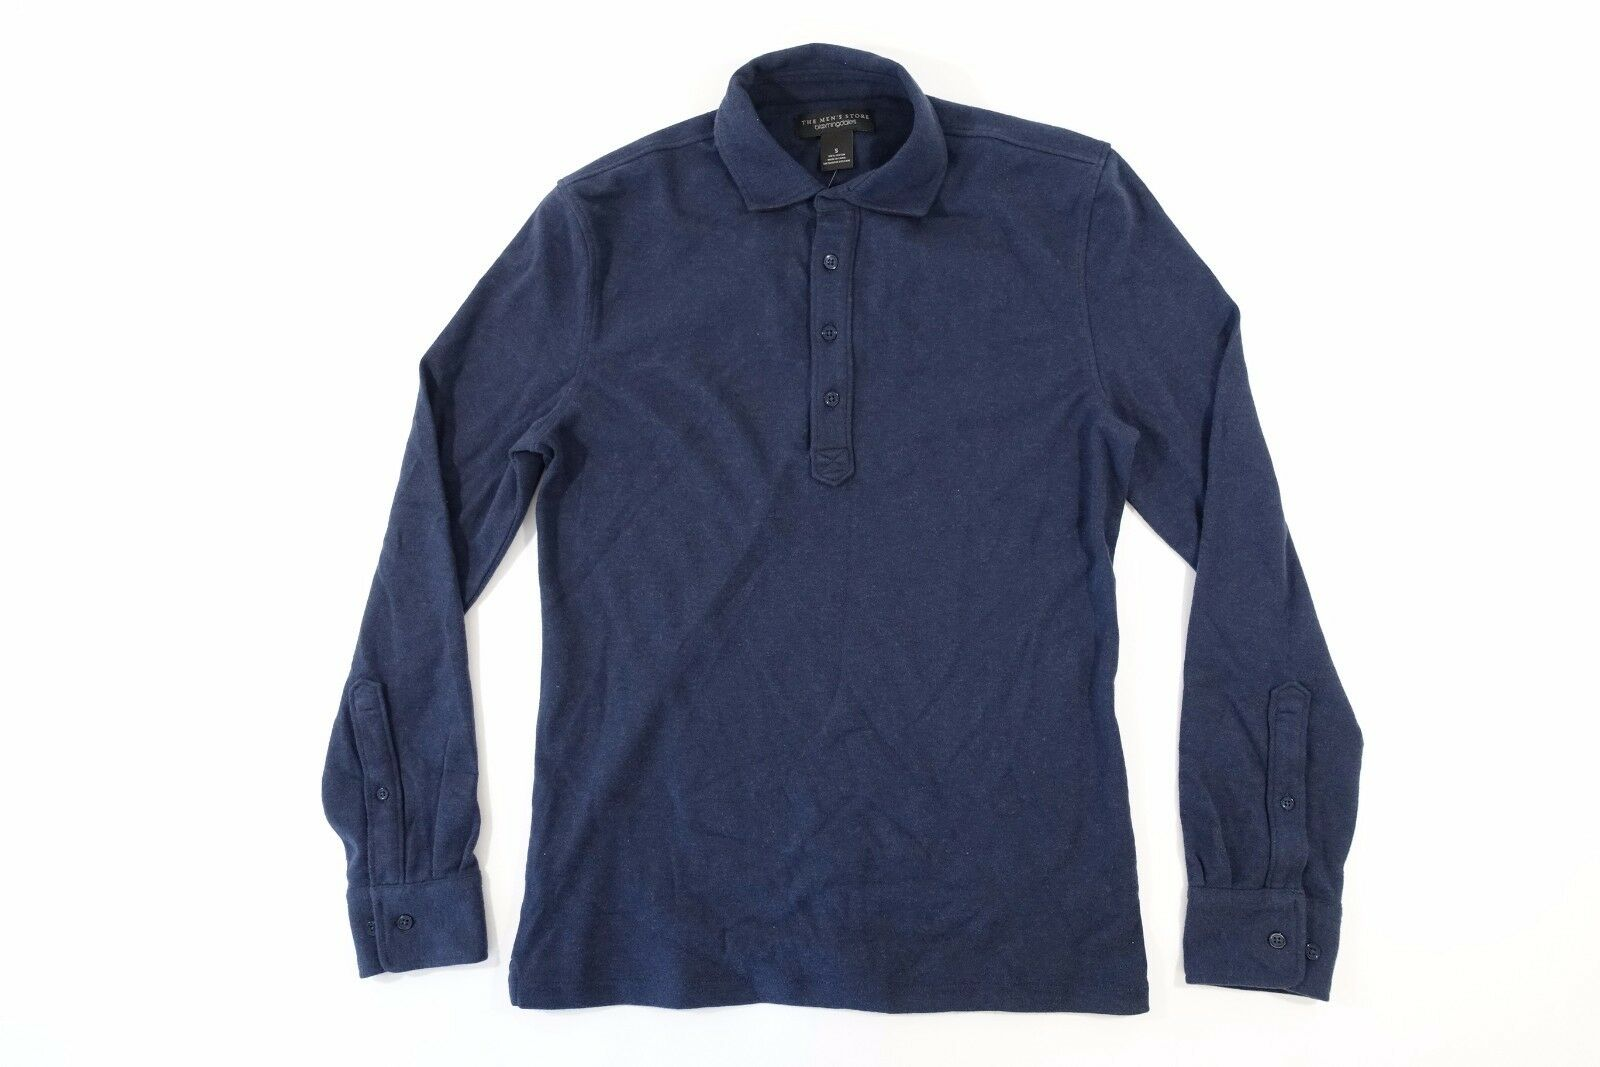 THE MENS STORE blueE SMALL POLO SWEATER MENS NWT NEW